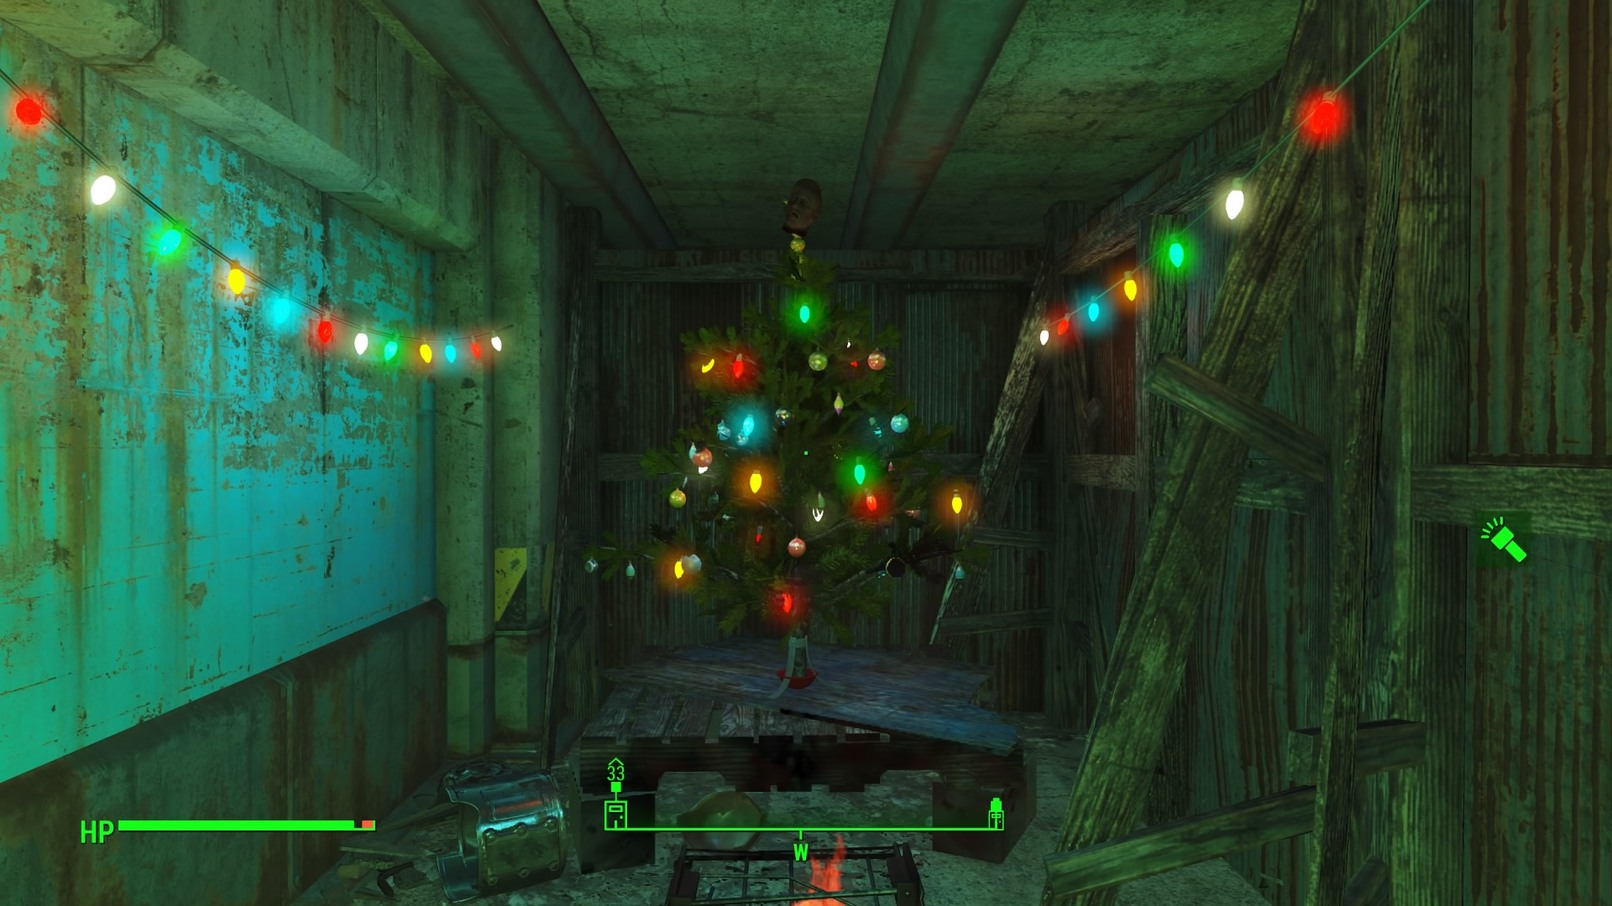 Fallout 4 wishing us a Merry Christmas - meme